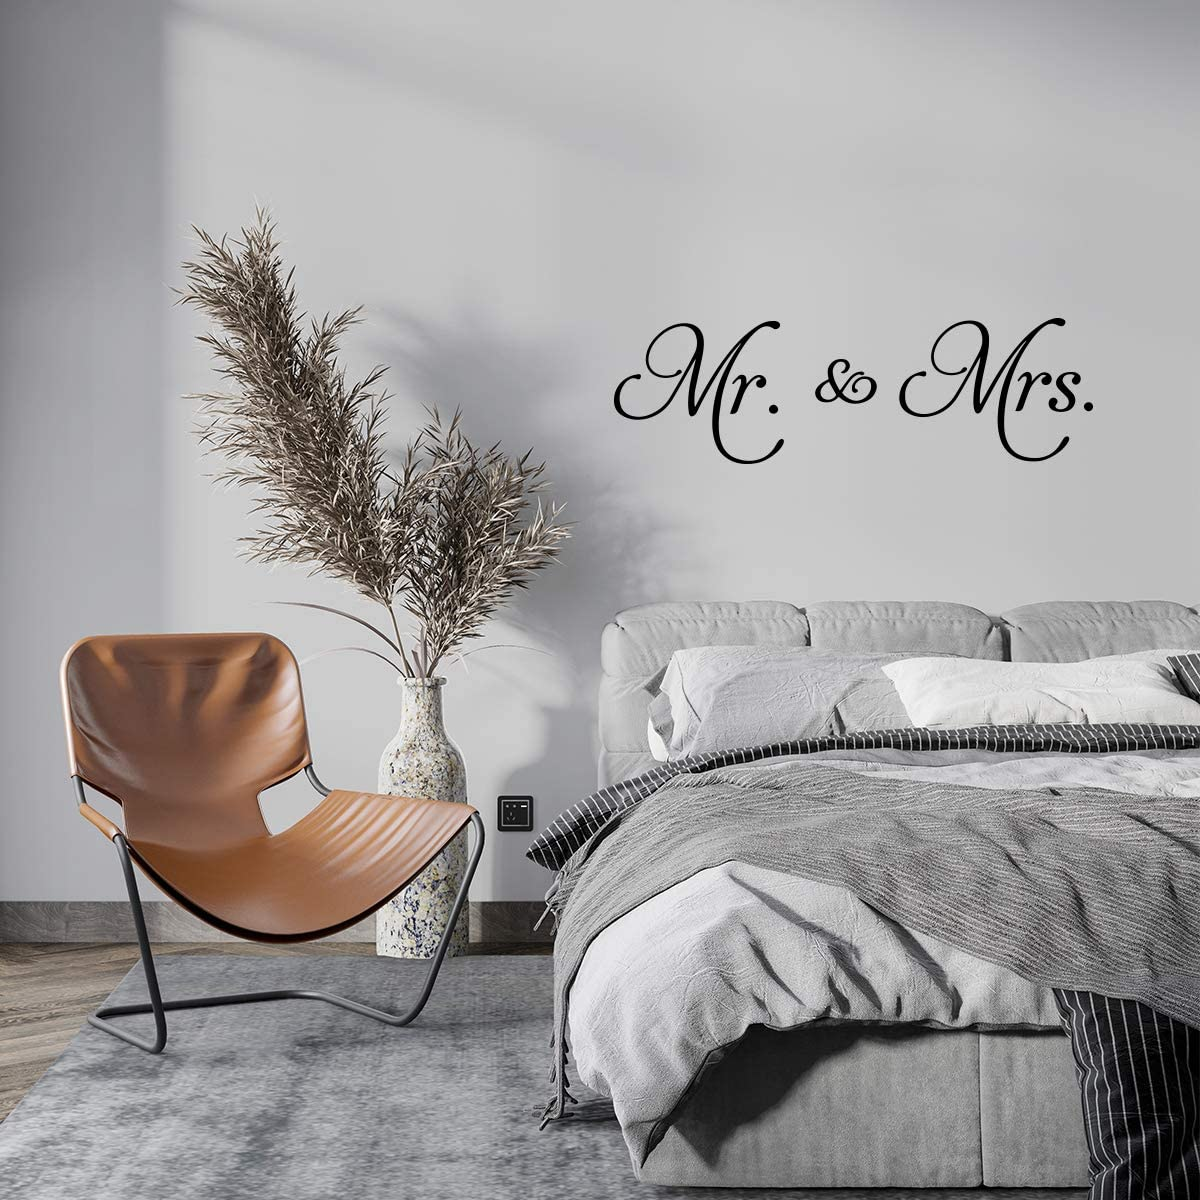 YOKIKI Mr. & Mrs.Decal Home Decor Quote Vinyl Wall Art Decal Wall Stickers Marriage Wedlock of Love Living Room Bedroom Decor Stickers